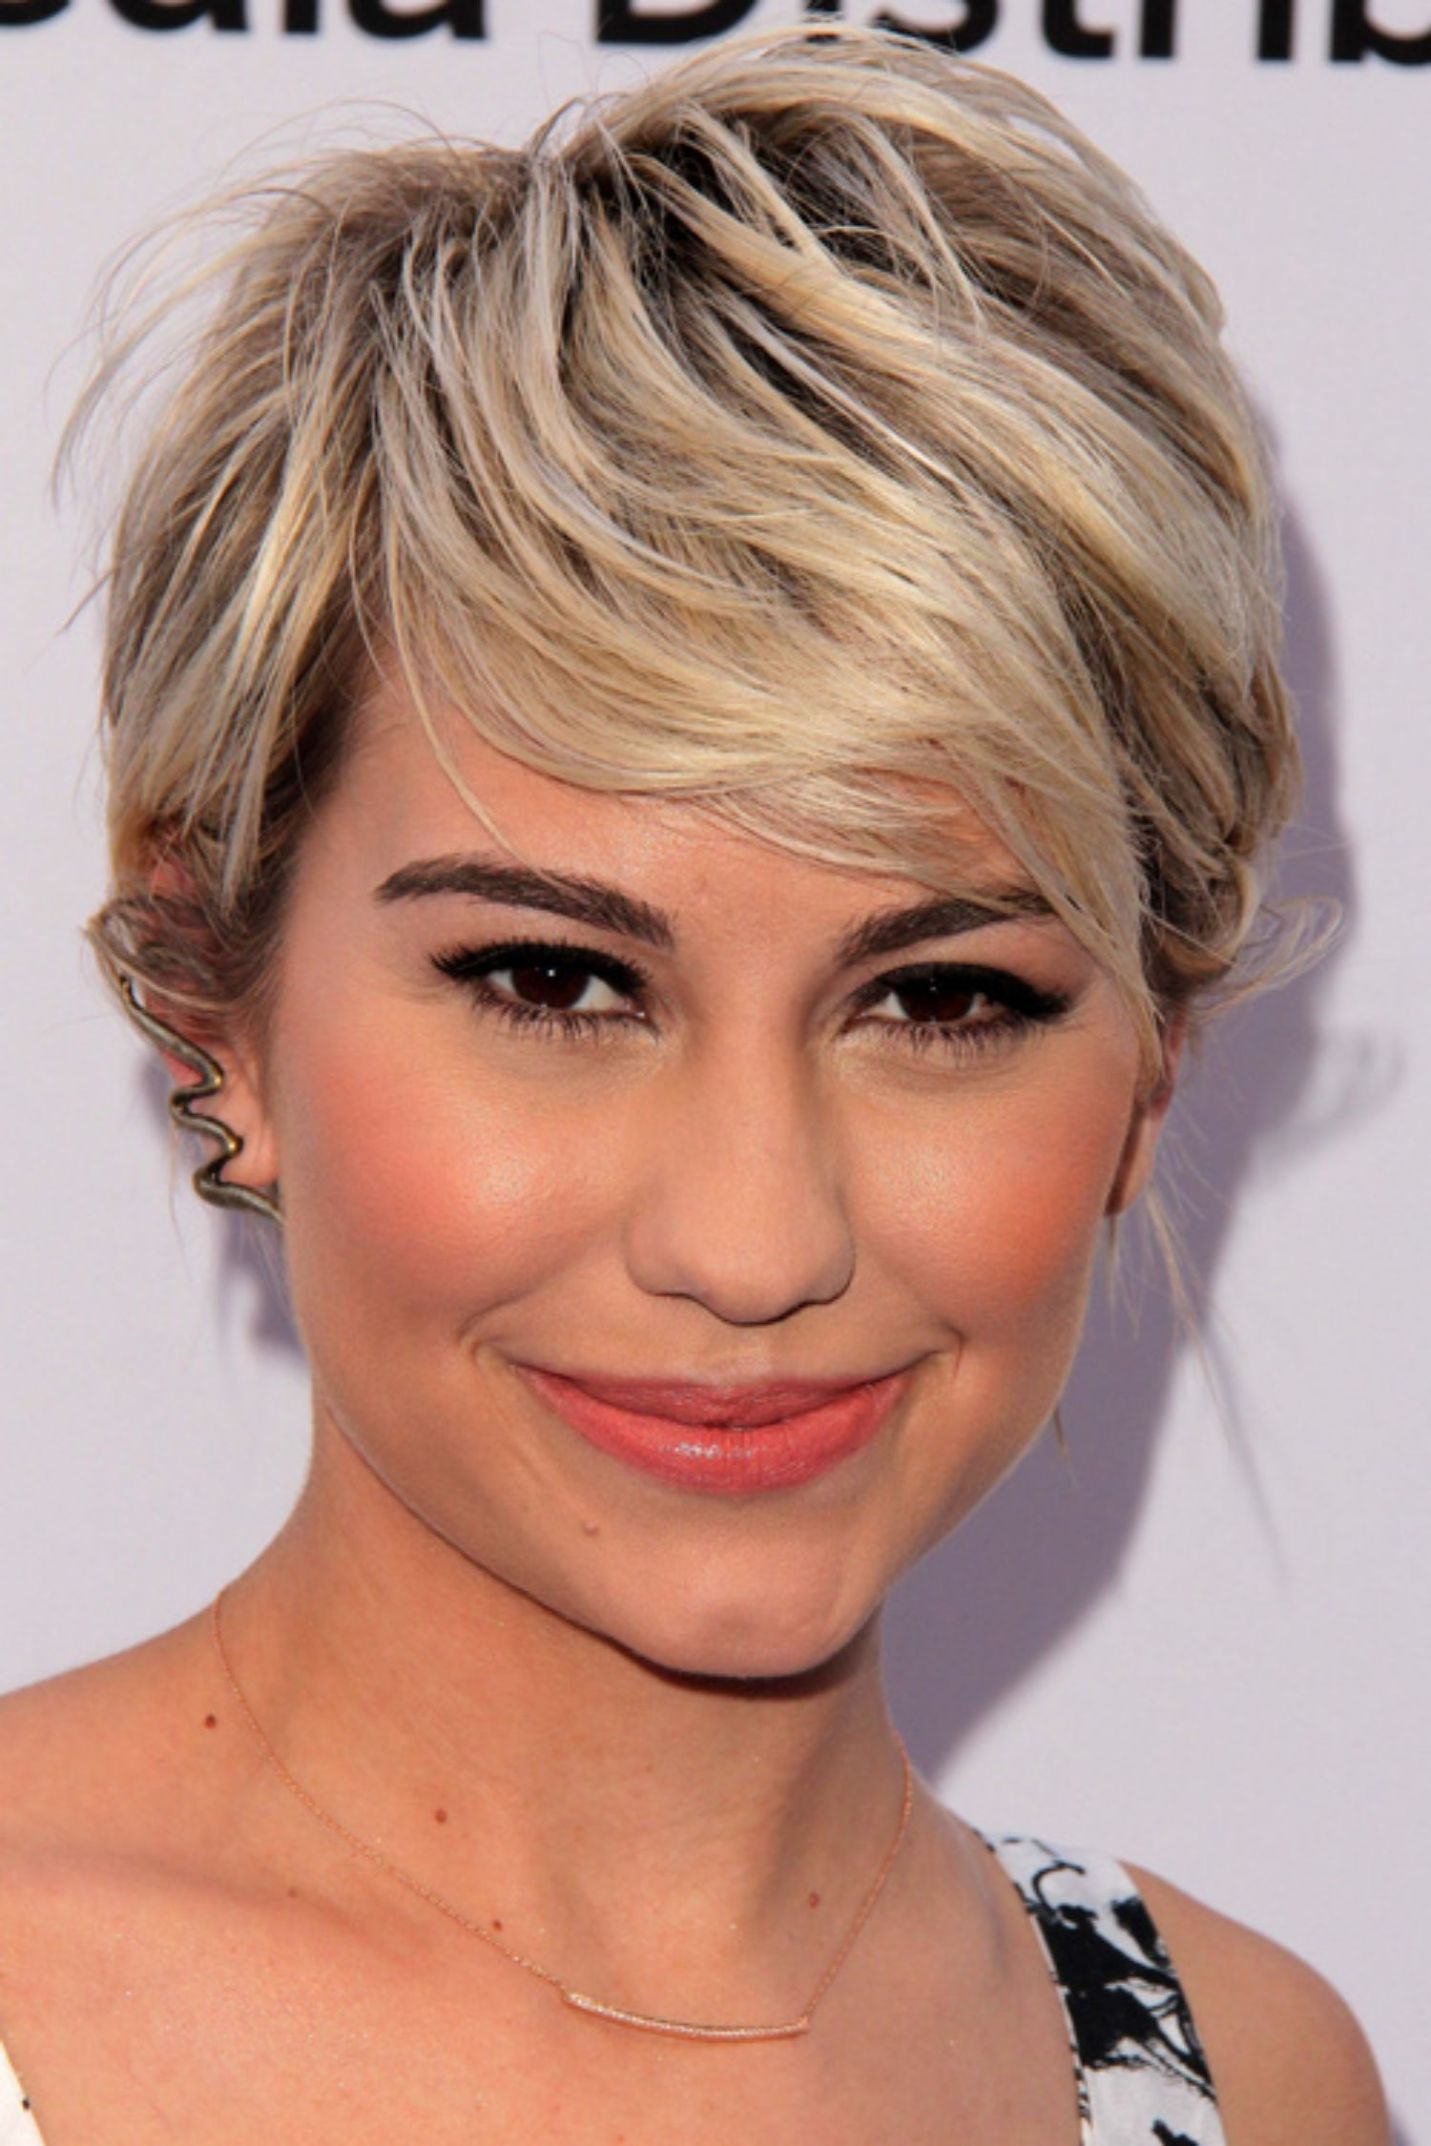 Pixie haircuts with bangs terrific tapers in hair styles